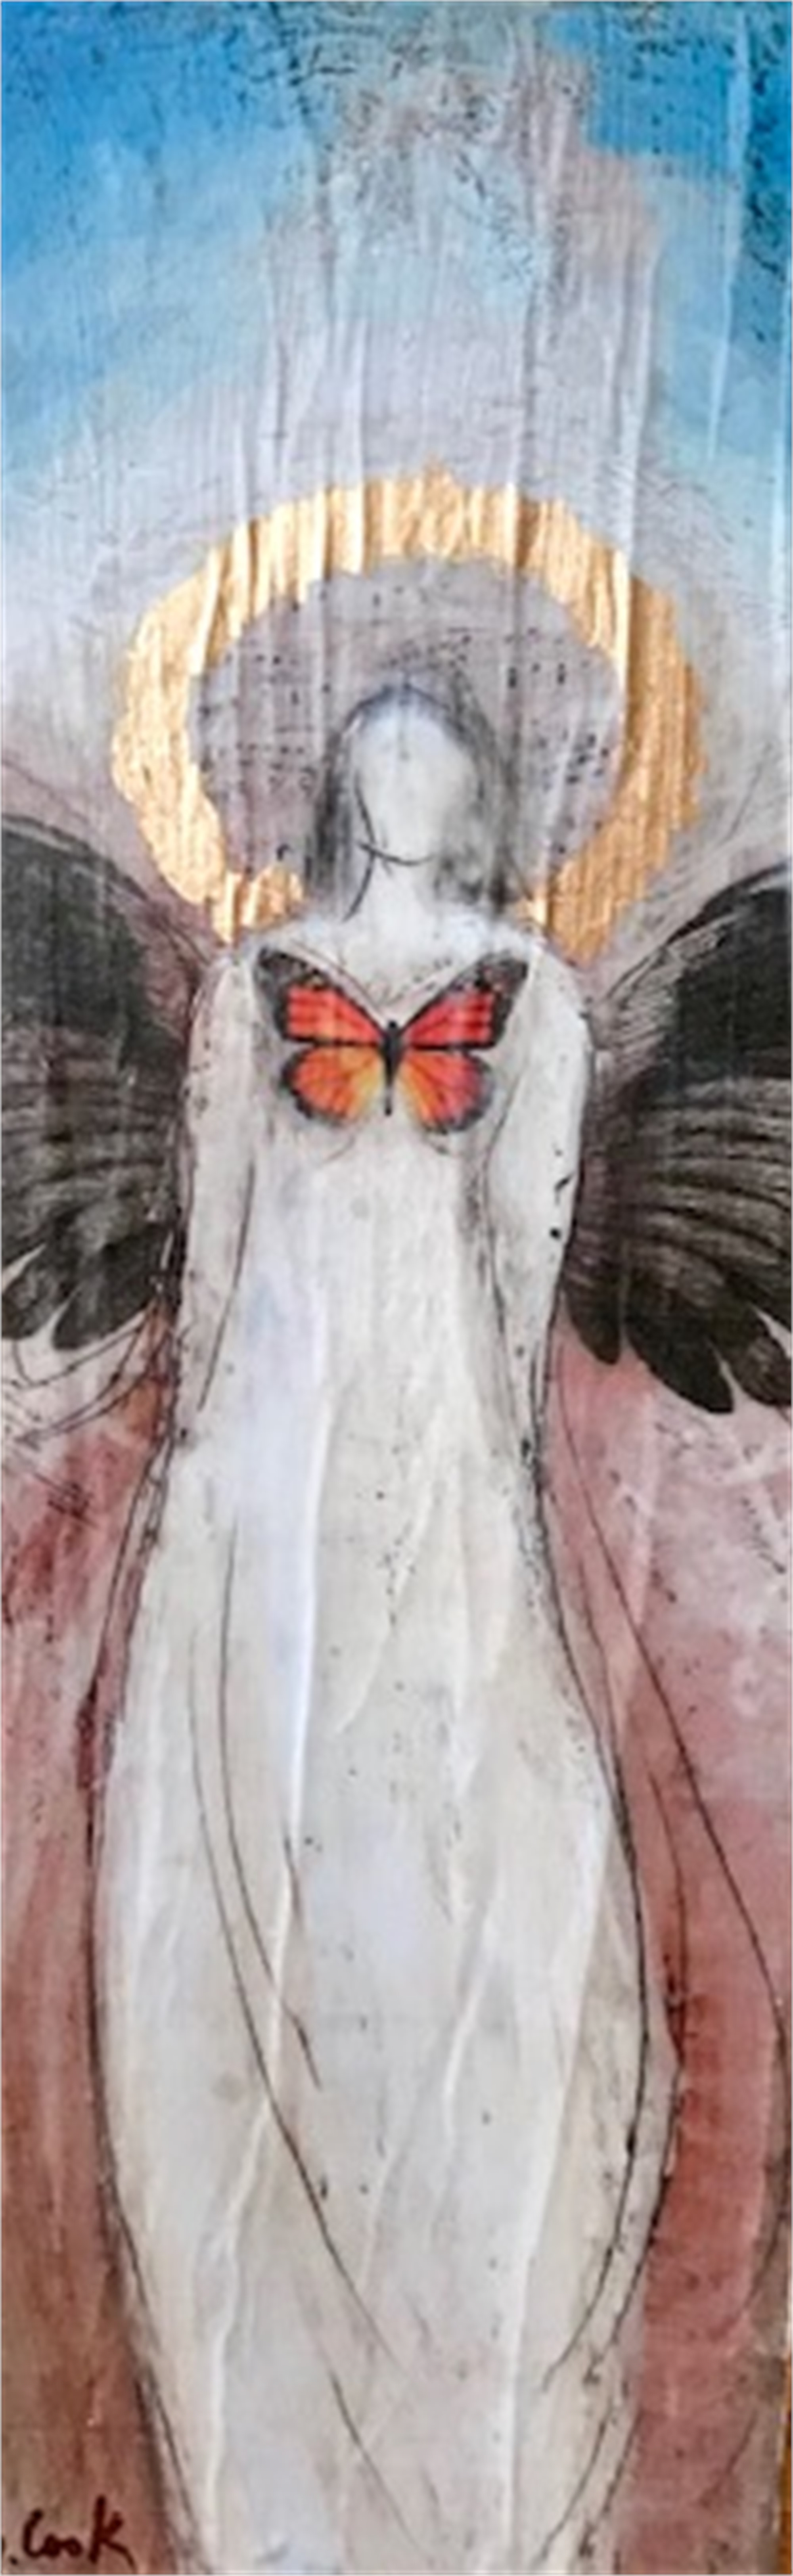 Monarch Angel by Sherry Cook